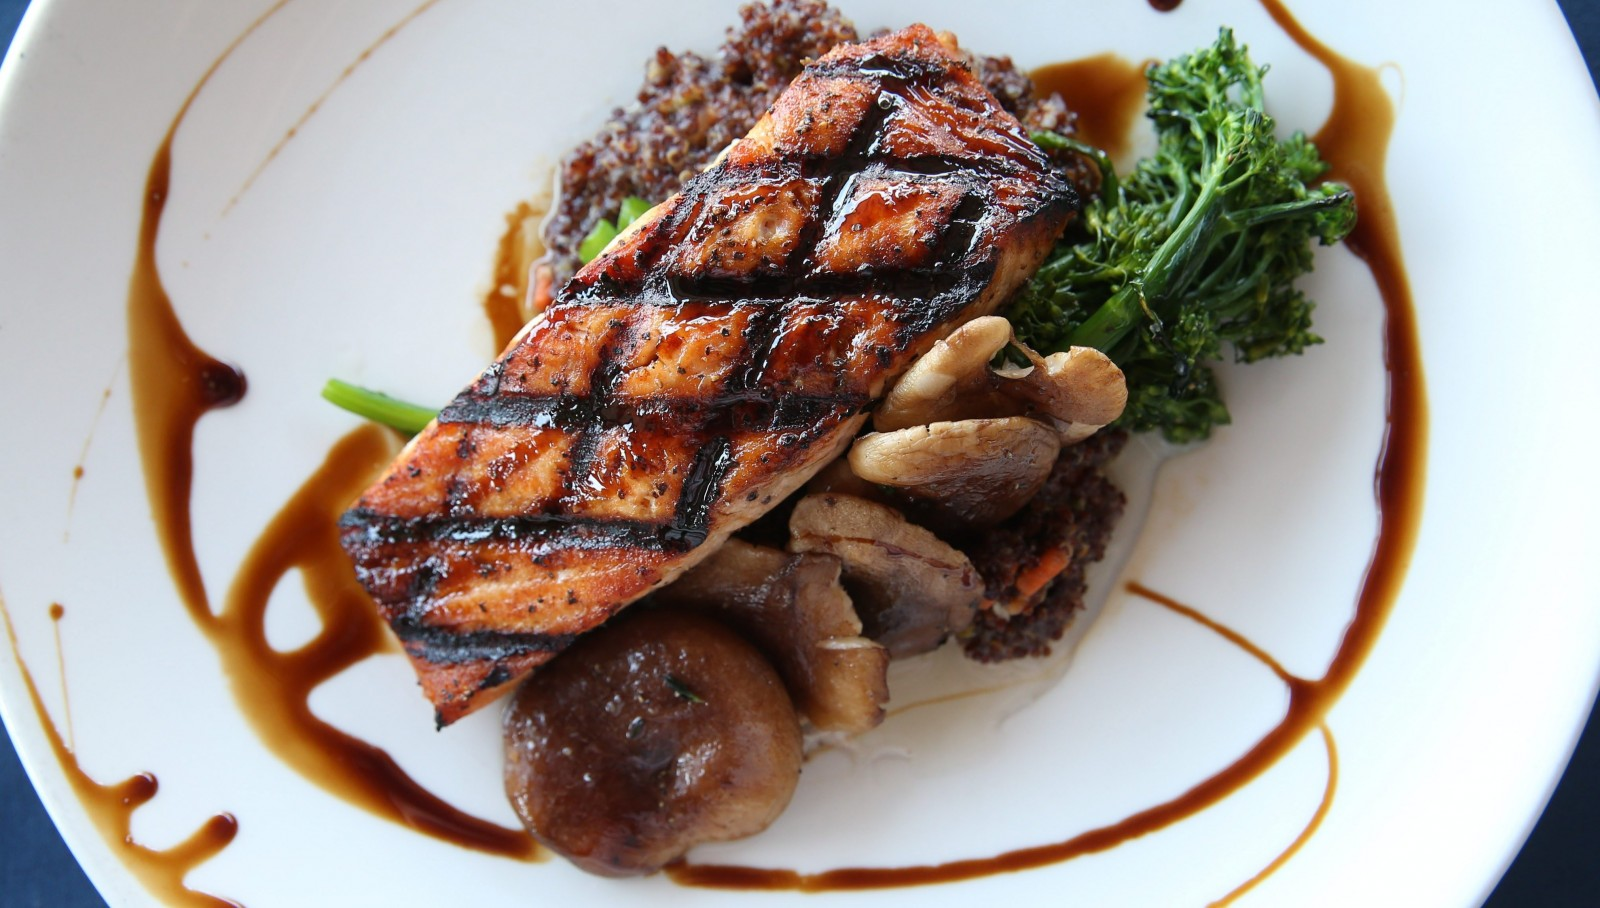 Salmon is grilled and sweet glazed and comes with roasted mushrooms and red quinoa. (Sharon Cantillon/Buffalo News)